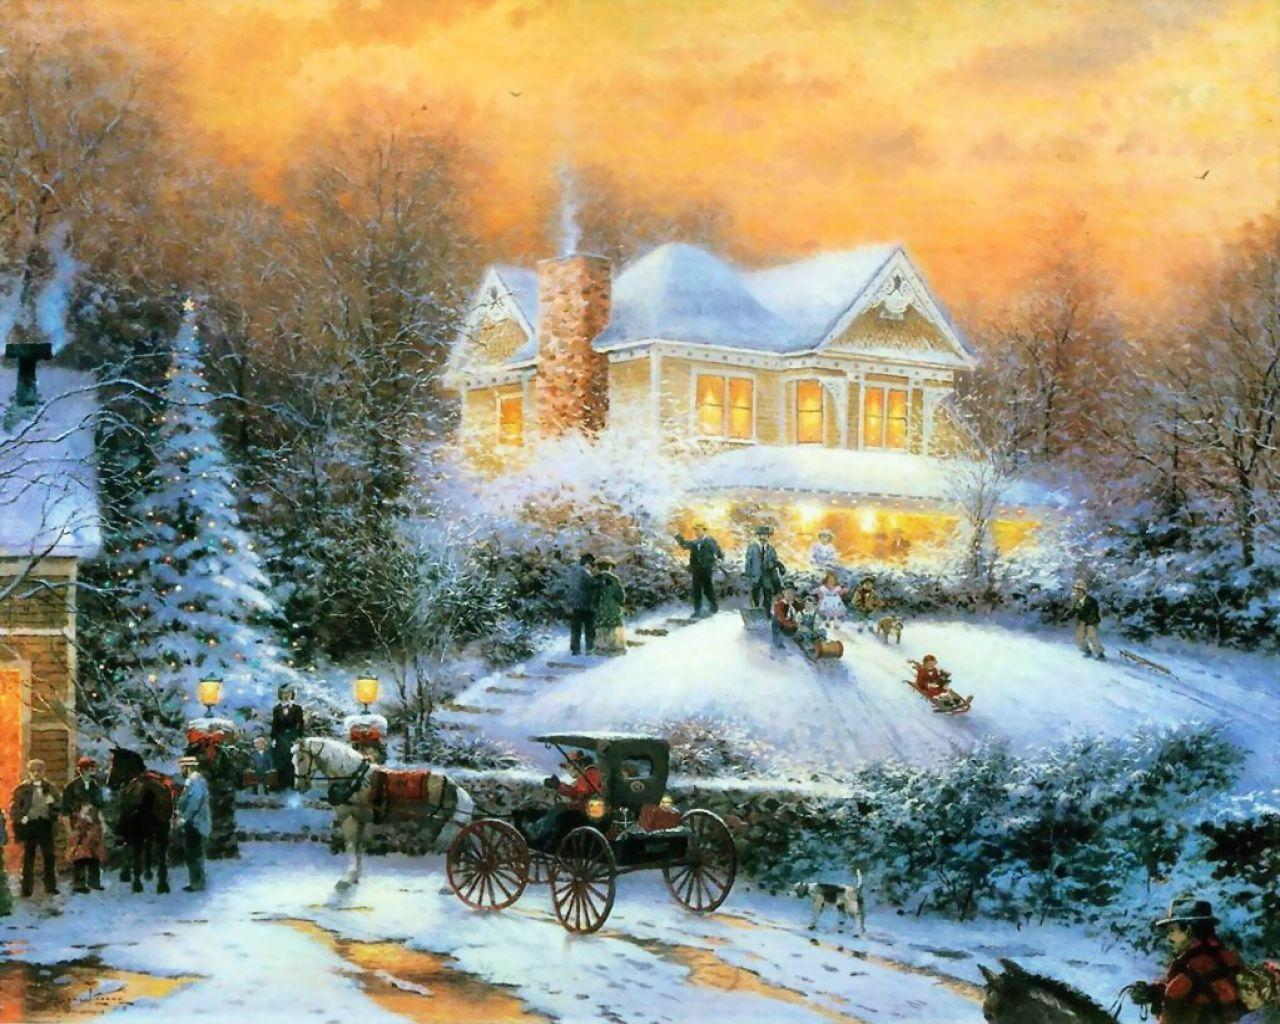 Thomas Kinkade Computer Wallpapers 33871 HD Desktop Backgrounds and